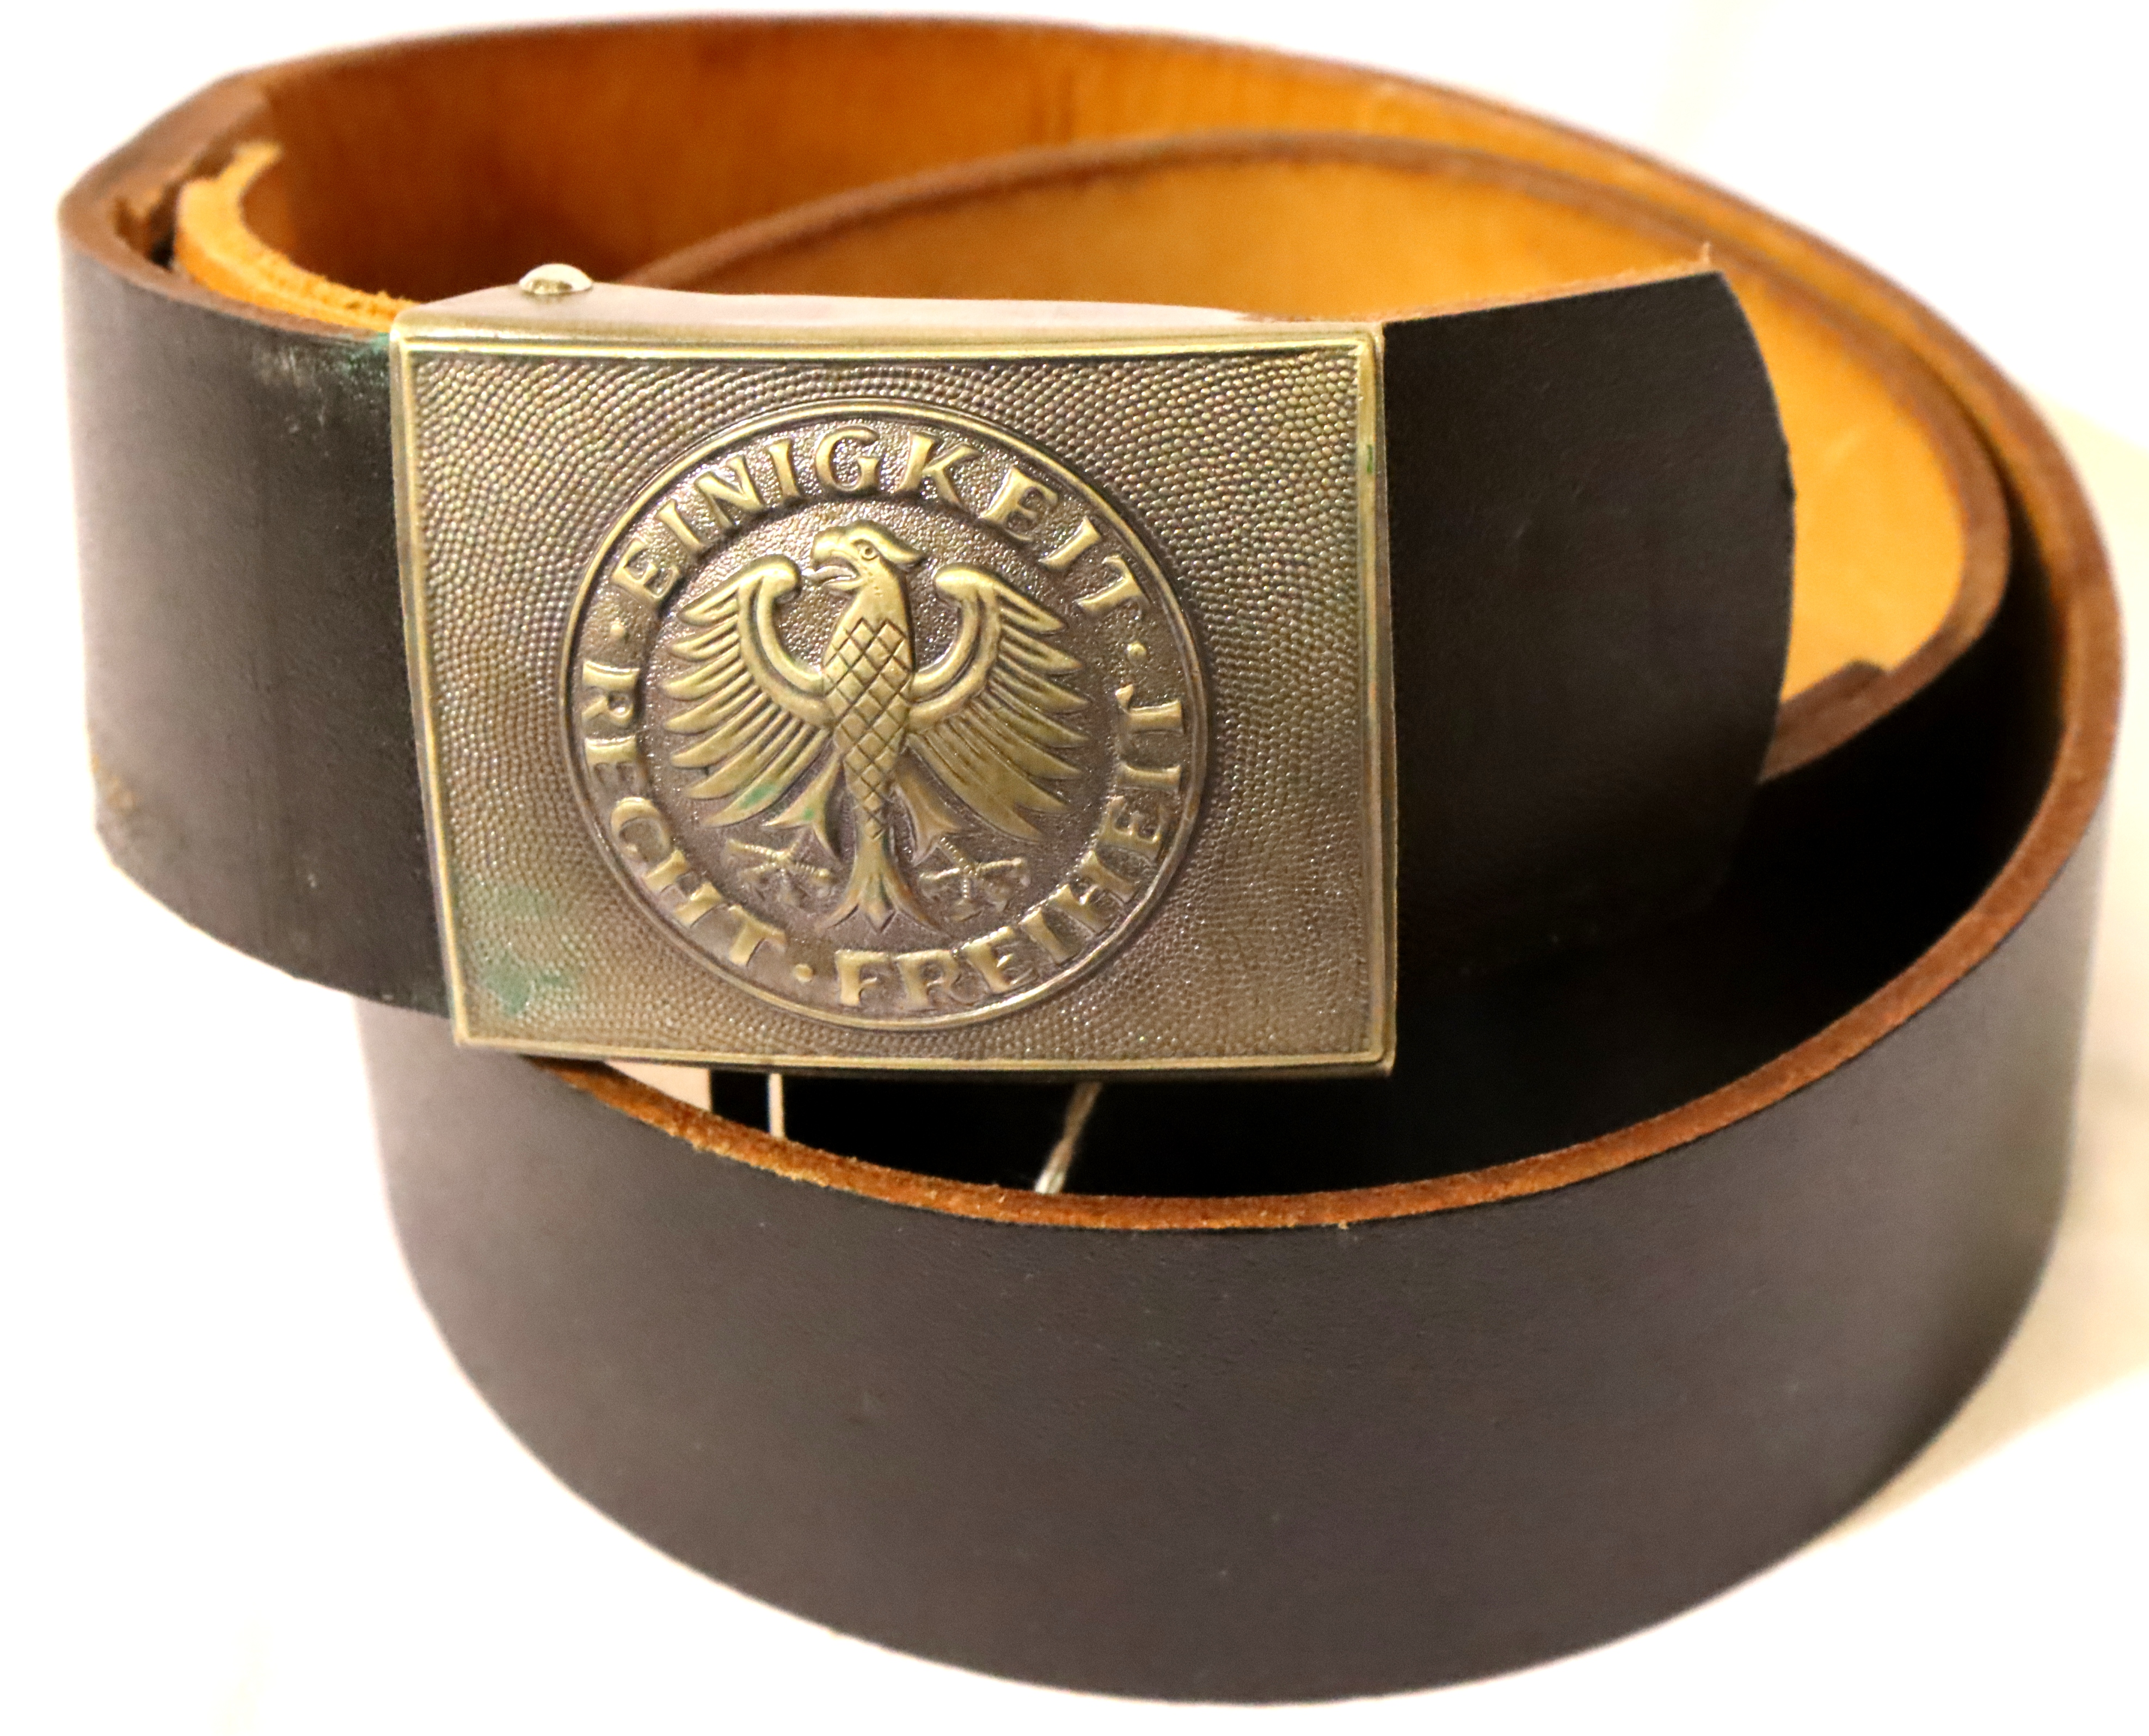 German inter-war period leather belt with pressed metal buckle. P&P Group 1 (£14+VAT for the first